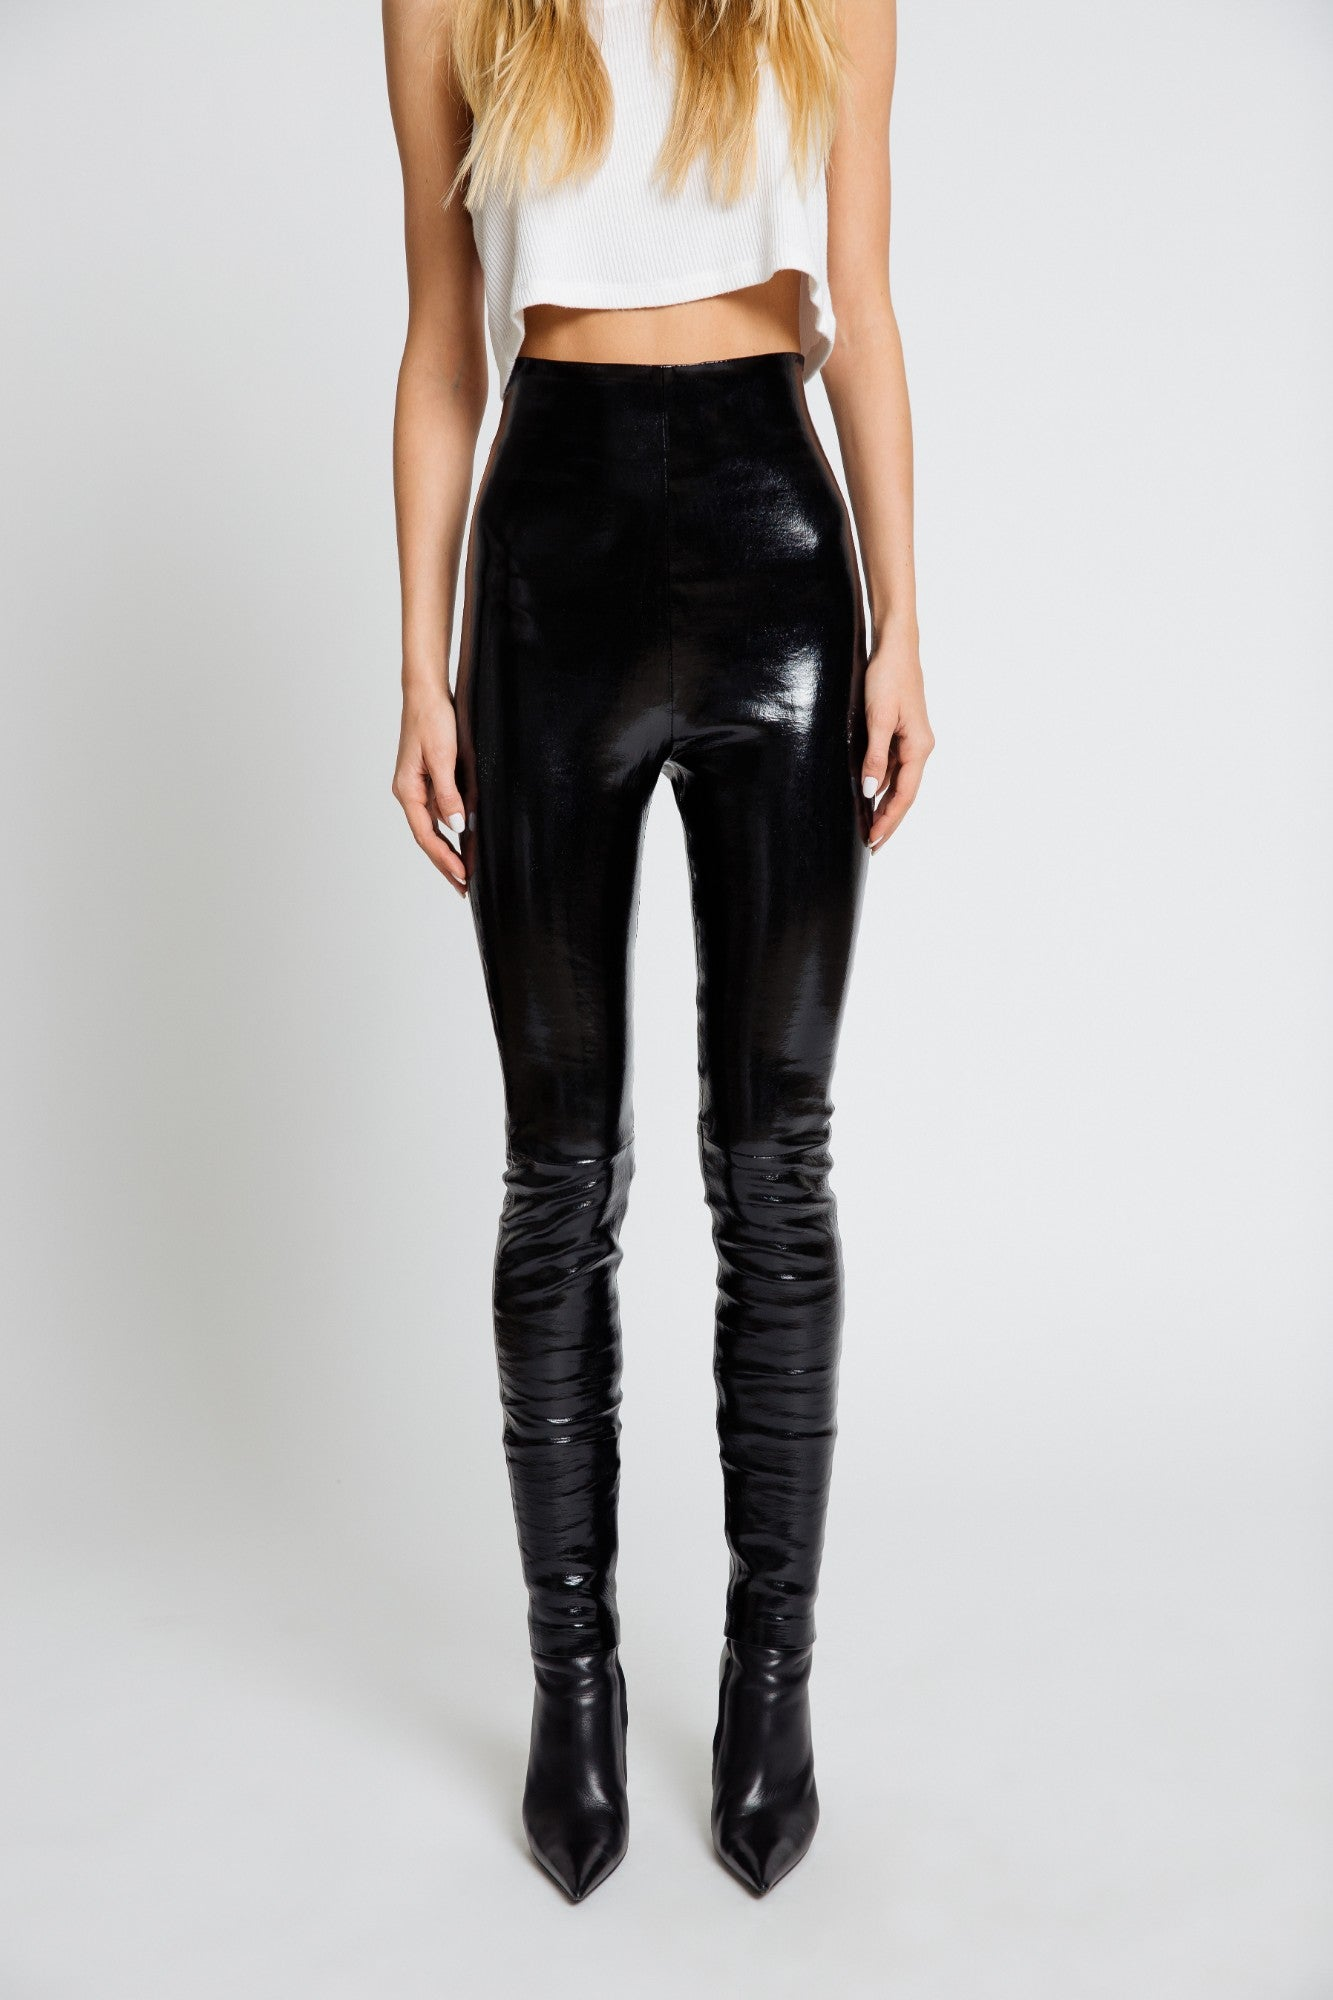 JESSICA HIGH WAISTED LEGGING | BLACK PATENT LEATHER